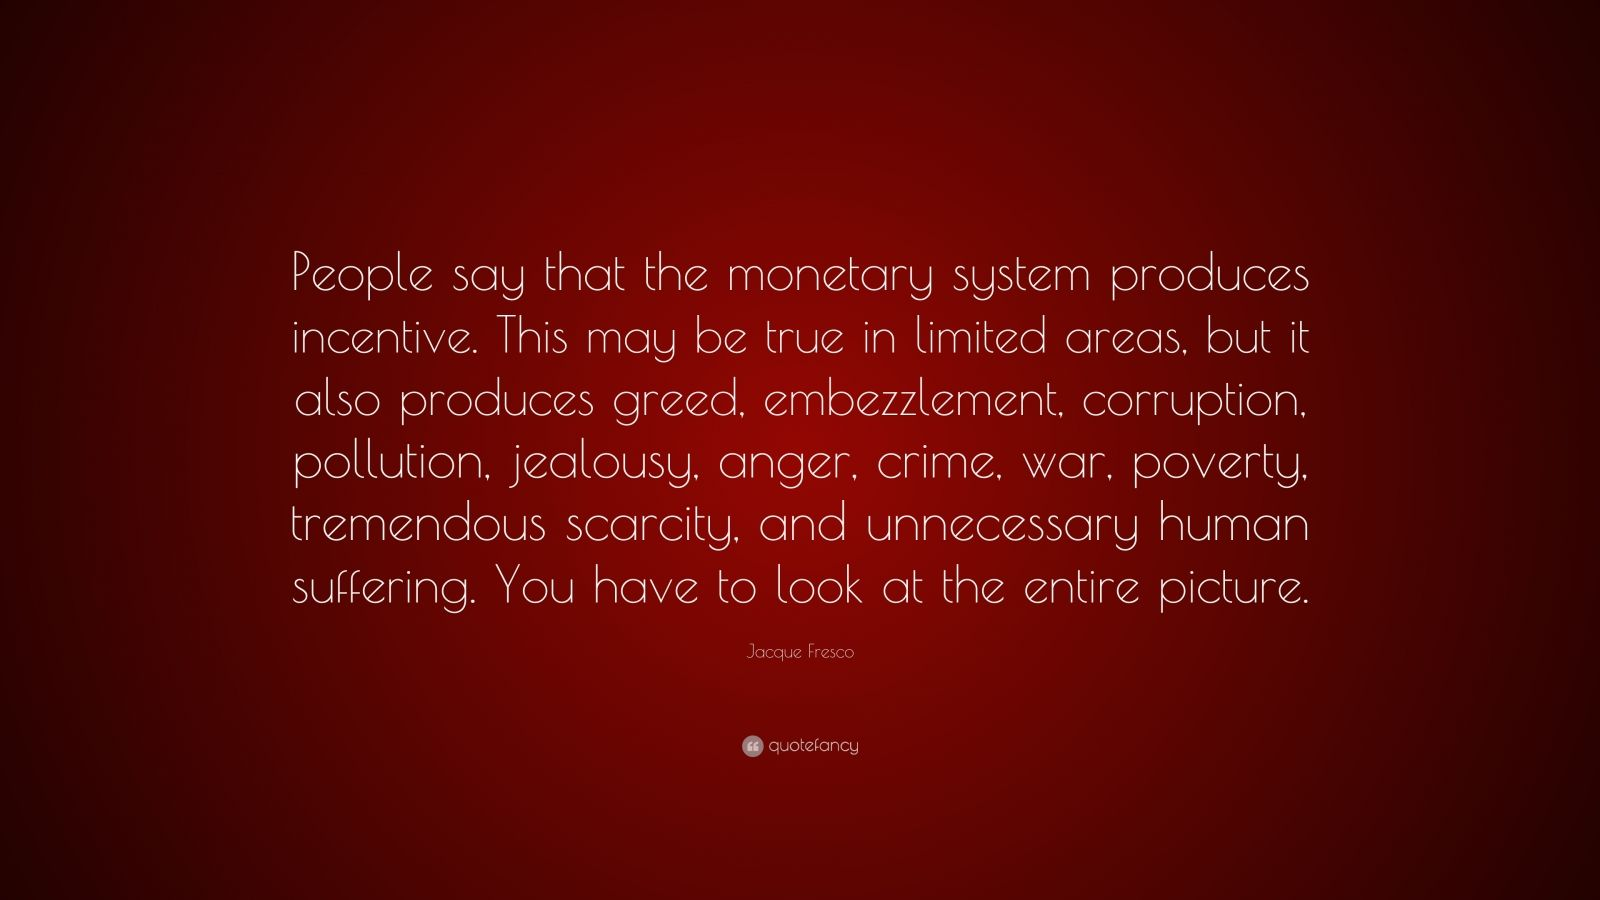 """Jacque Fresco Quote: """"People say that the monetary system produces incentive. This may be true in limited areas, but it also produces greed, embezzlement, corruption, pollution, jealousy, anger, crime, war, poverty, tremendous scarcity, and unnecessary human suffering. You have to look at the entire picture."""""""